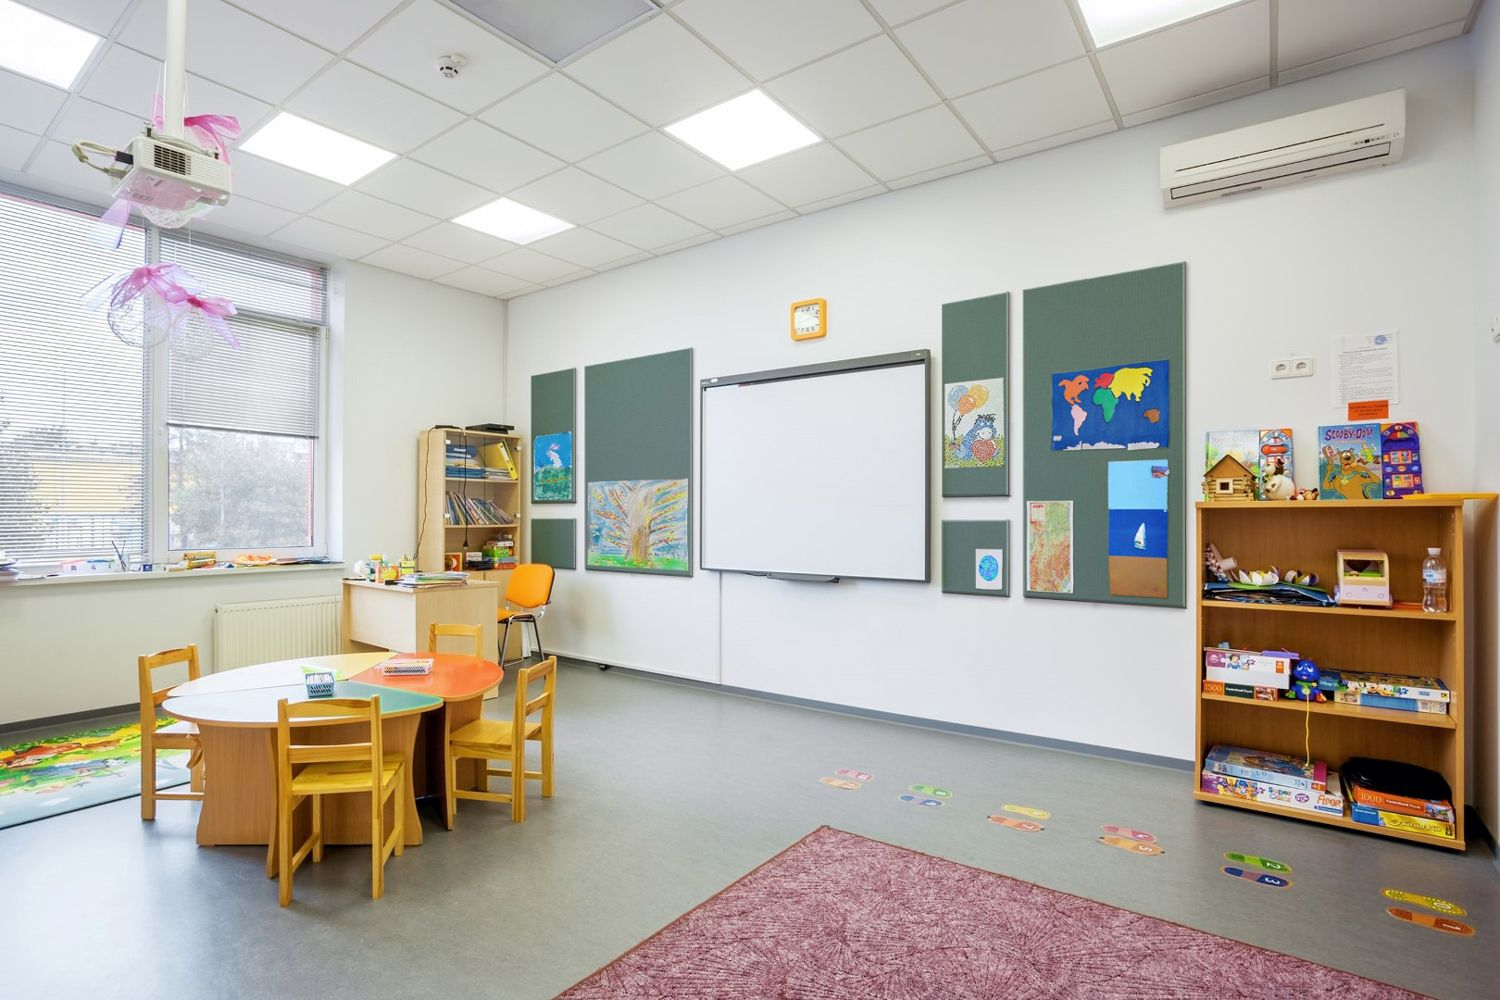 Wall Protection - Education - Preschool - Safe